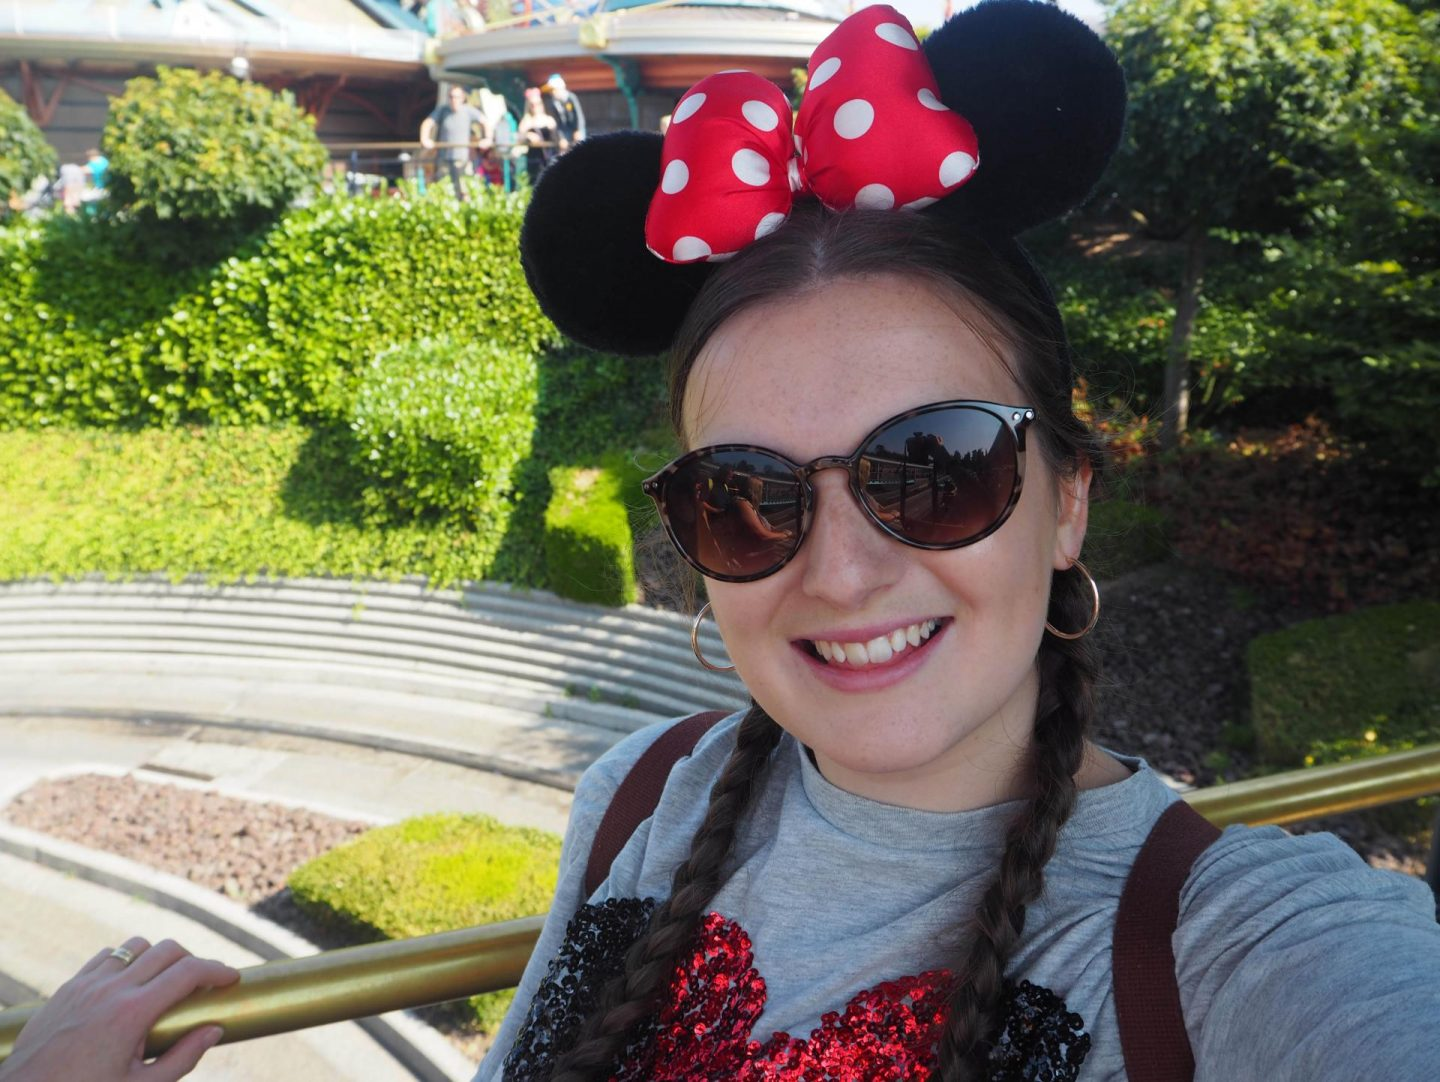 disneyland-paris-my-22nd-birthday-trip-rachel-nicole-uk-travel-disney-blogger-15